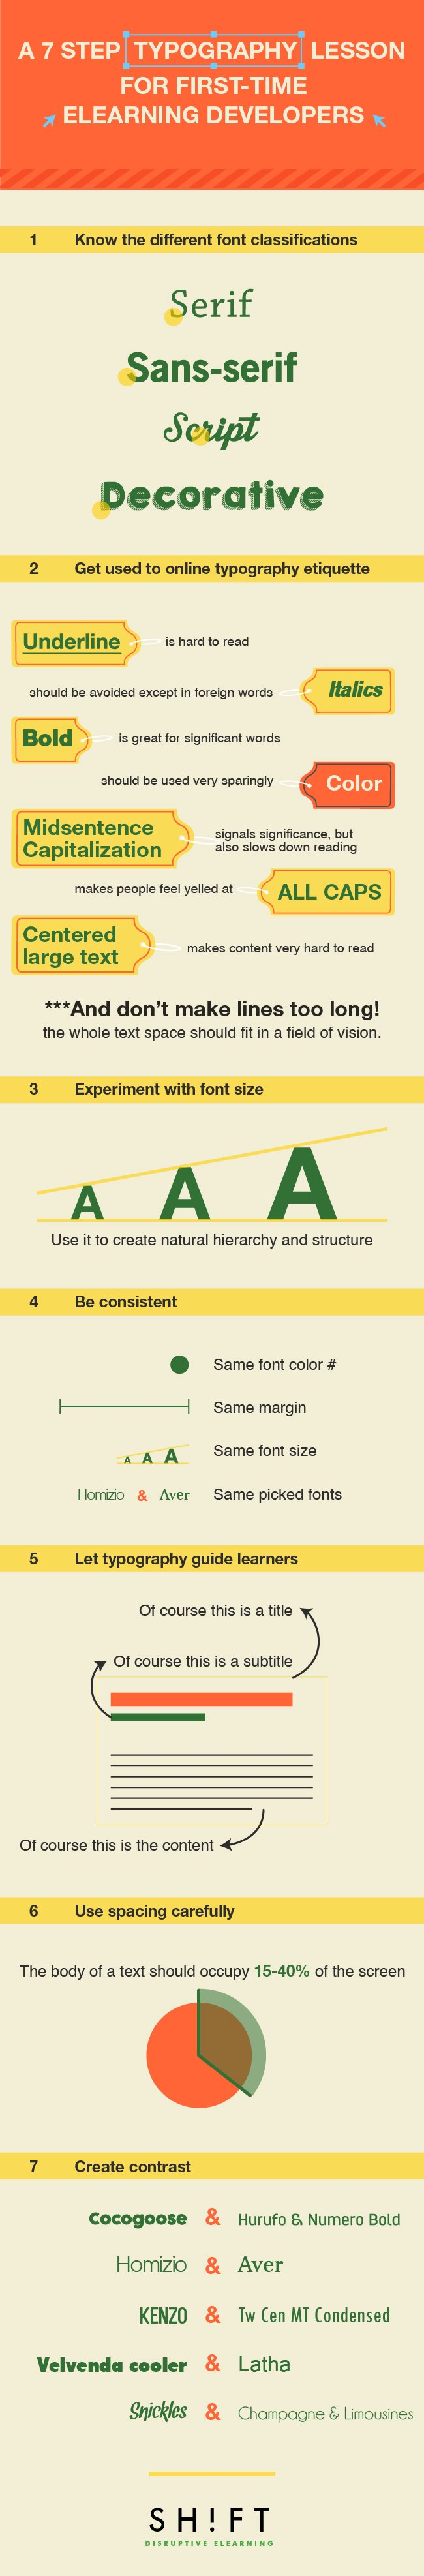 eLearning typography